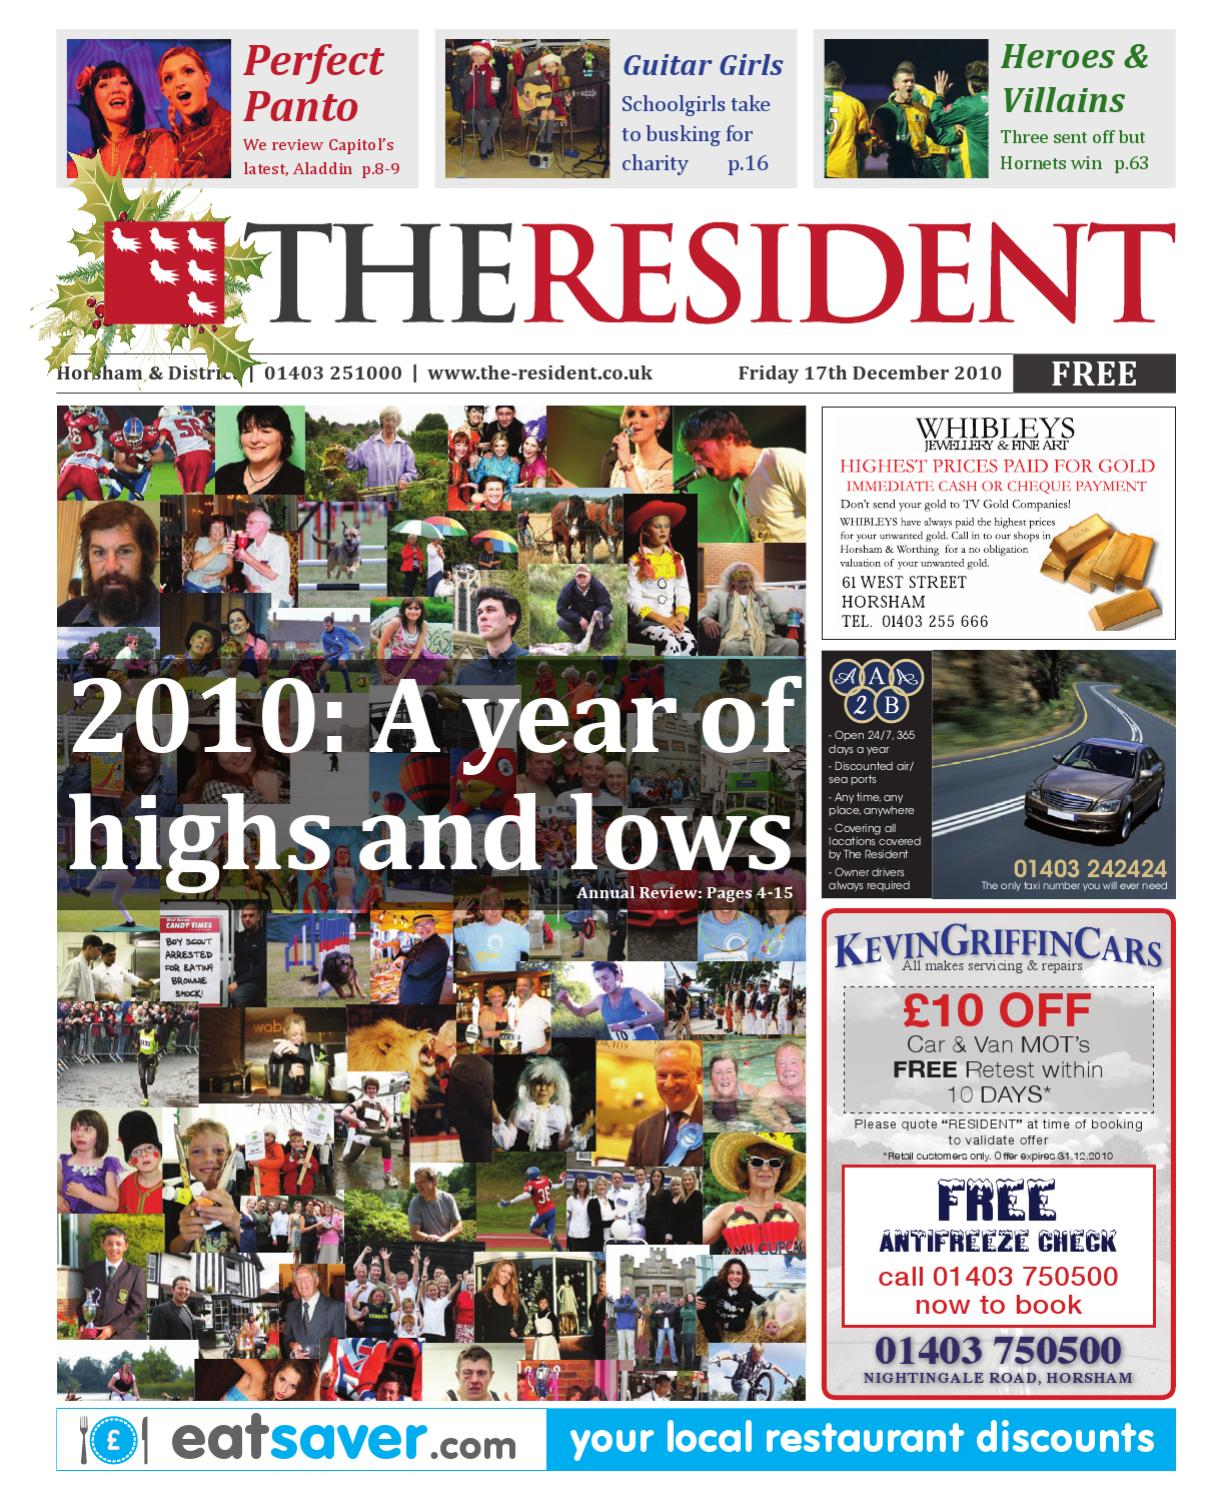 The Resident - 17th December 2010 by HD Publishing Ltd - issuu